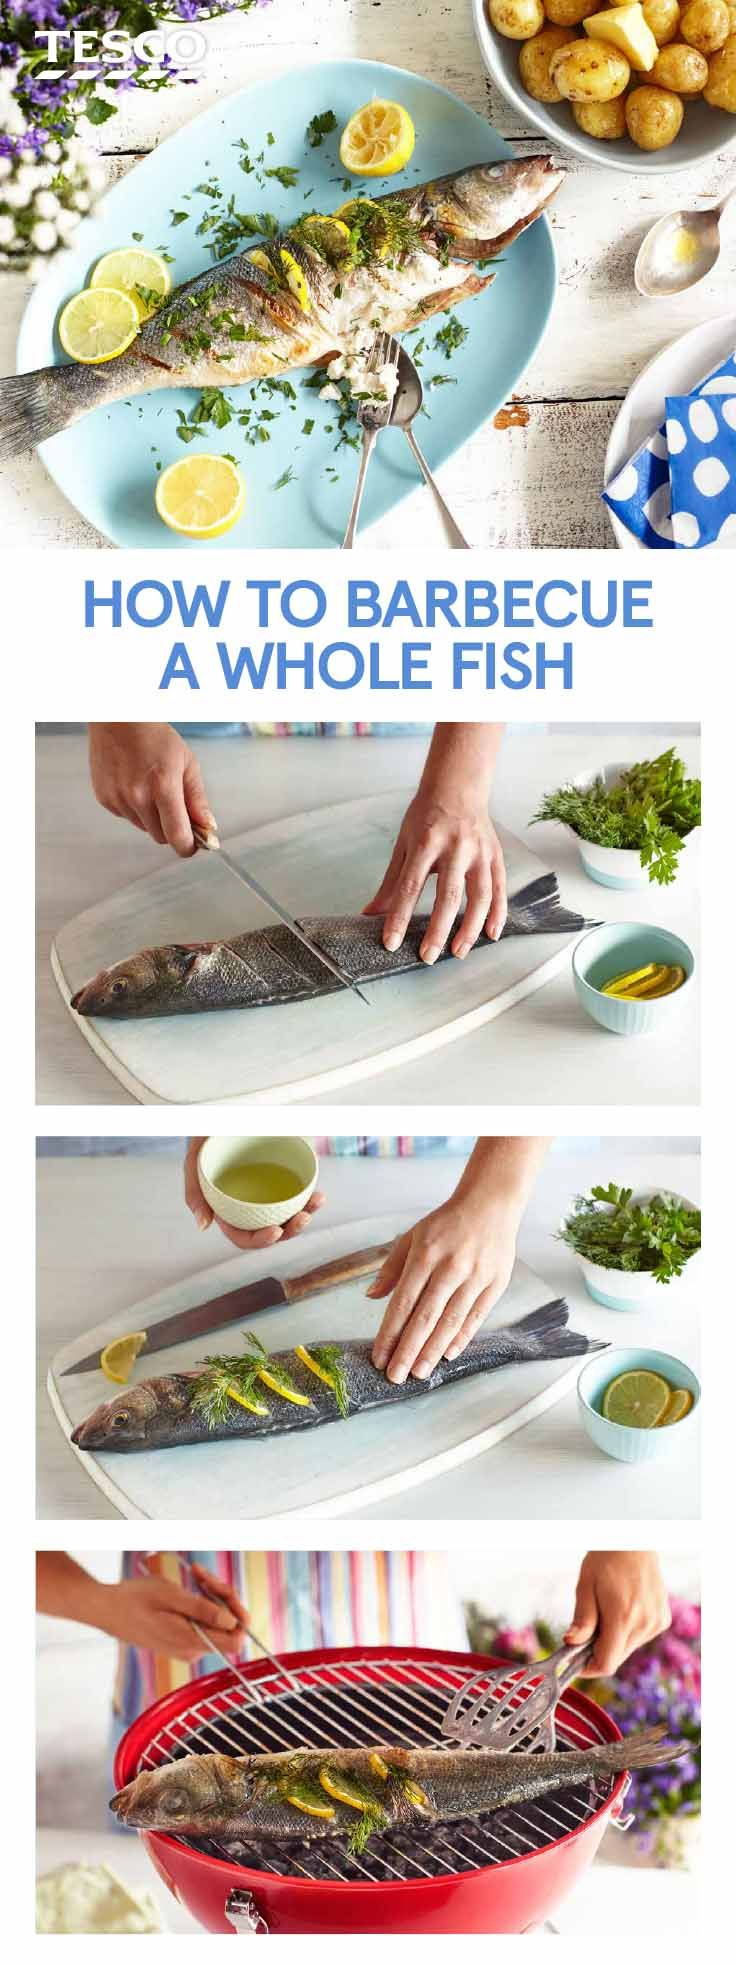 180 best bbq ideas recipes tesco images on pinterest for How to cook a whole fish